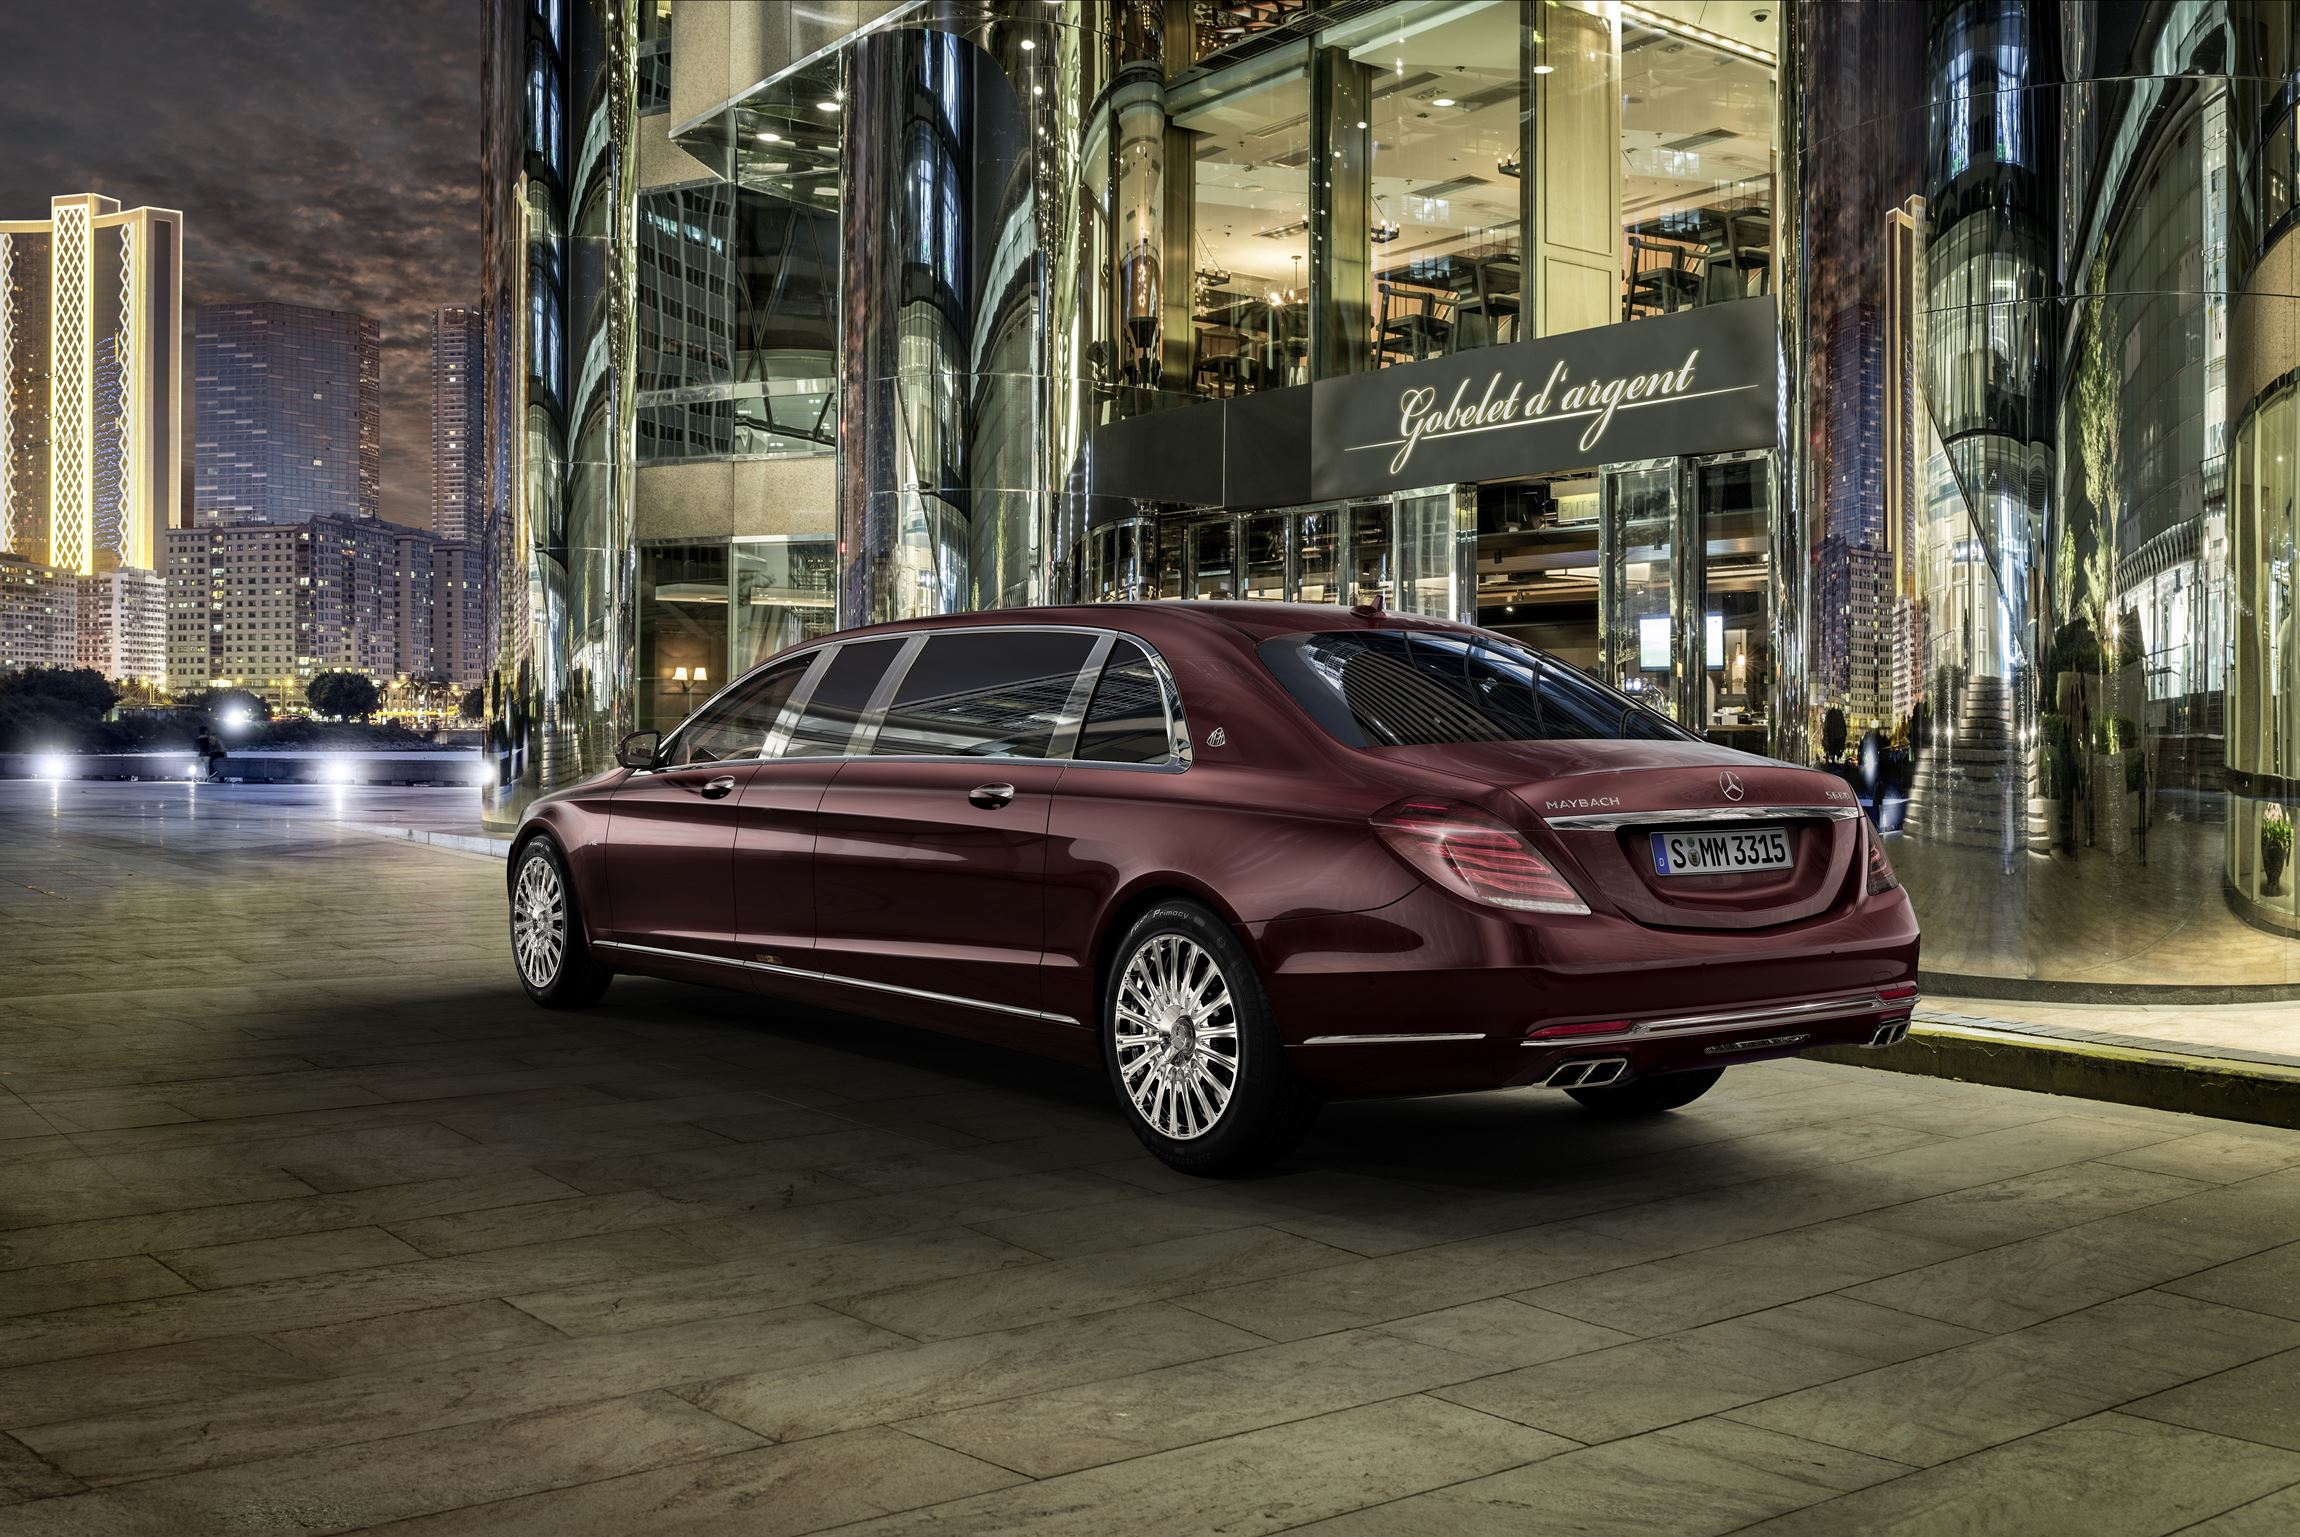 Mercedes Model Lineup For Louisville Ky in addition Wallpaper 86 additionally Mercedes Benz GL Class 2013 Widescreen Wallpaper Ds20 I4923 also S 600 additionally 2016 Mercedes Maybach Pullman. on 2015 mercedes s600 coupe